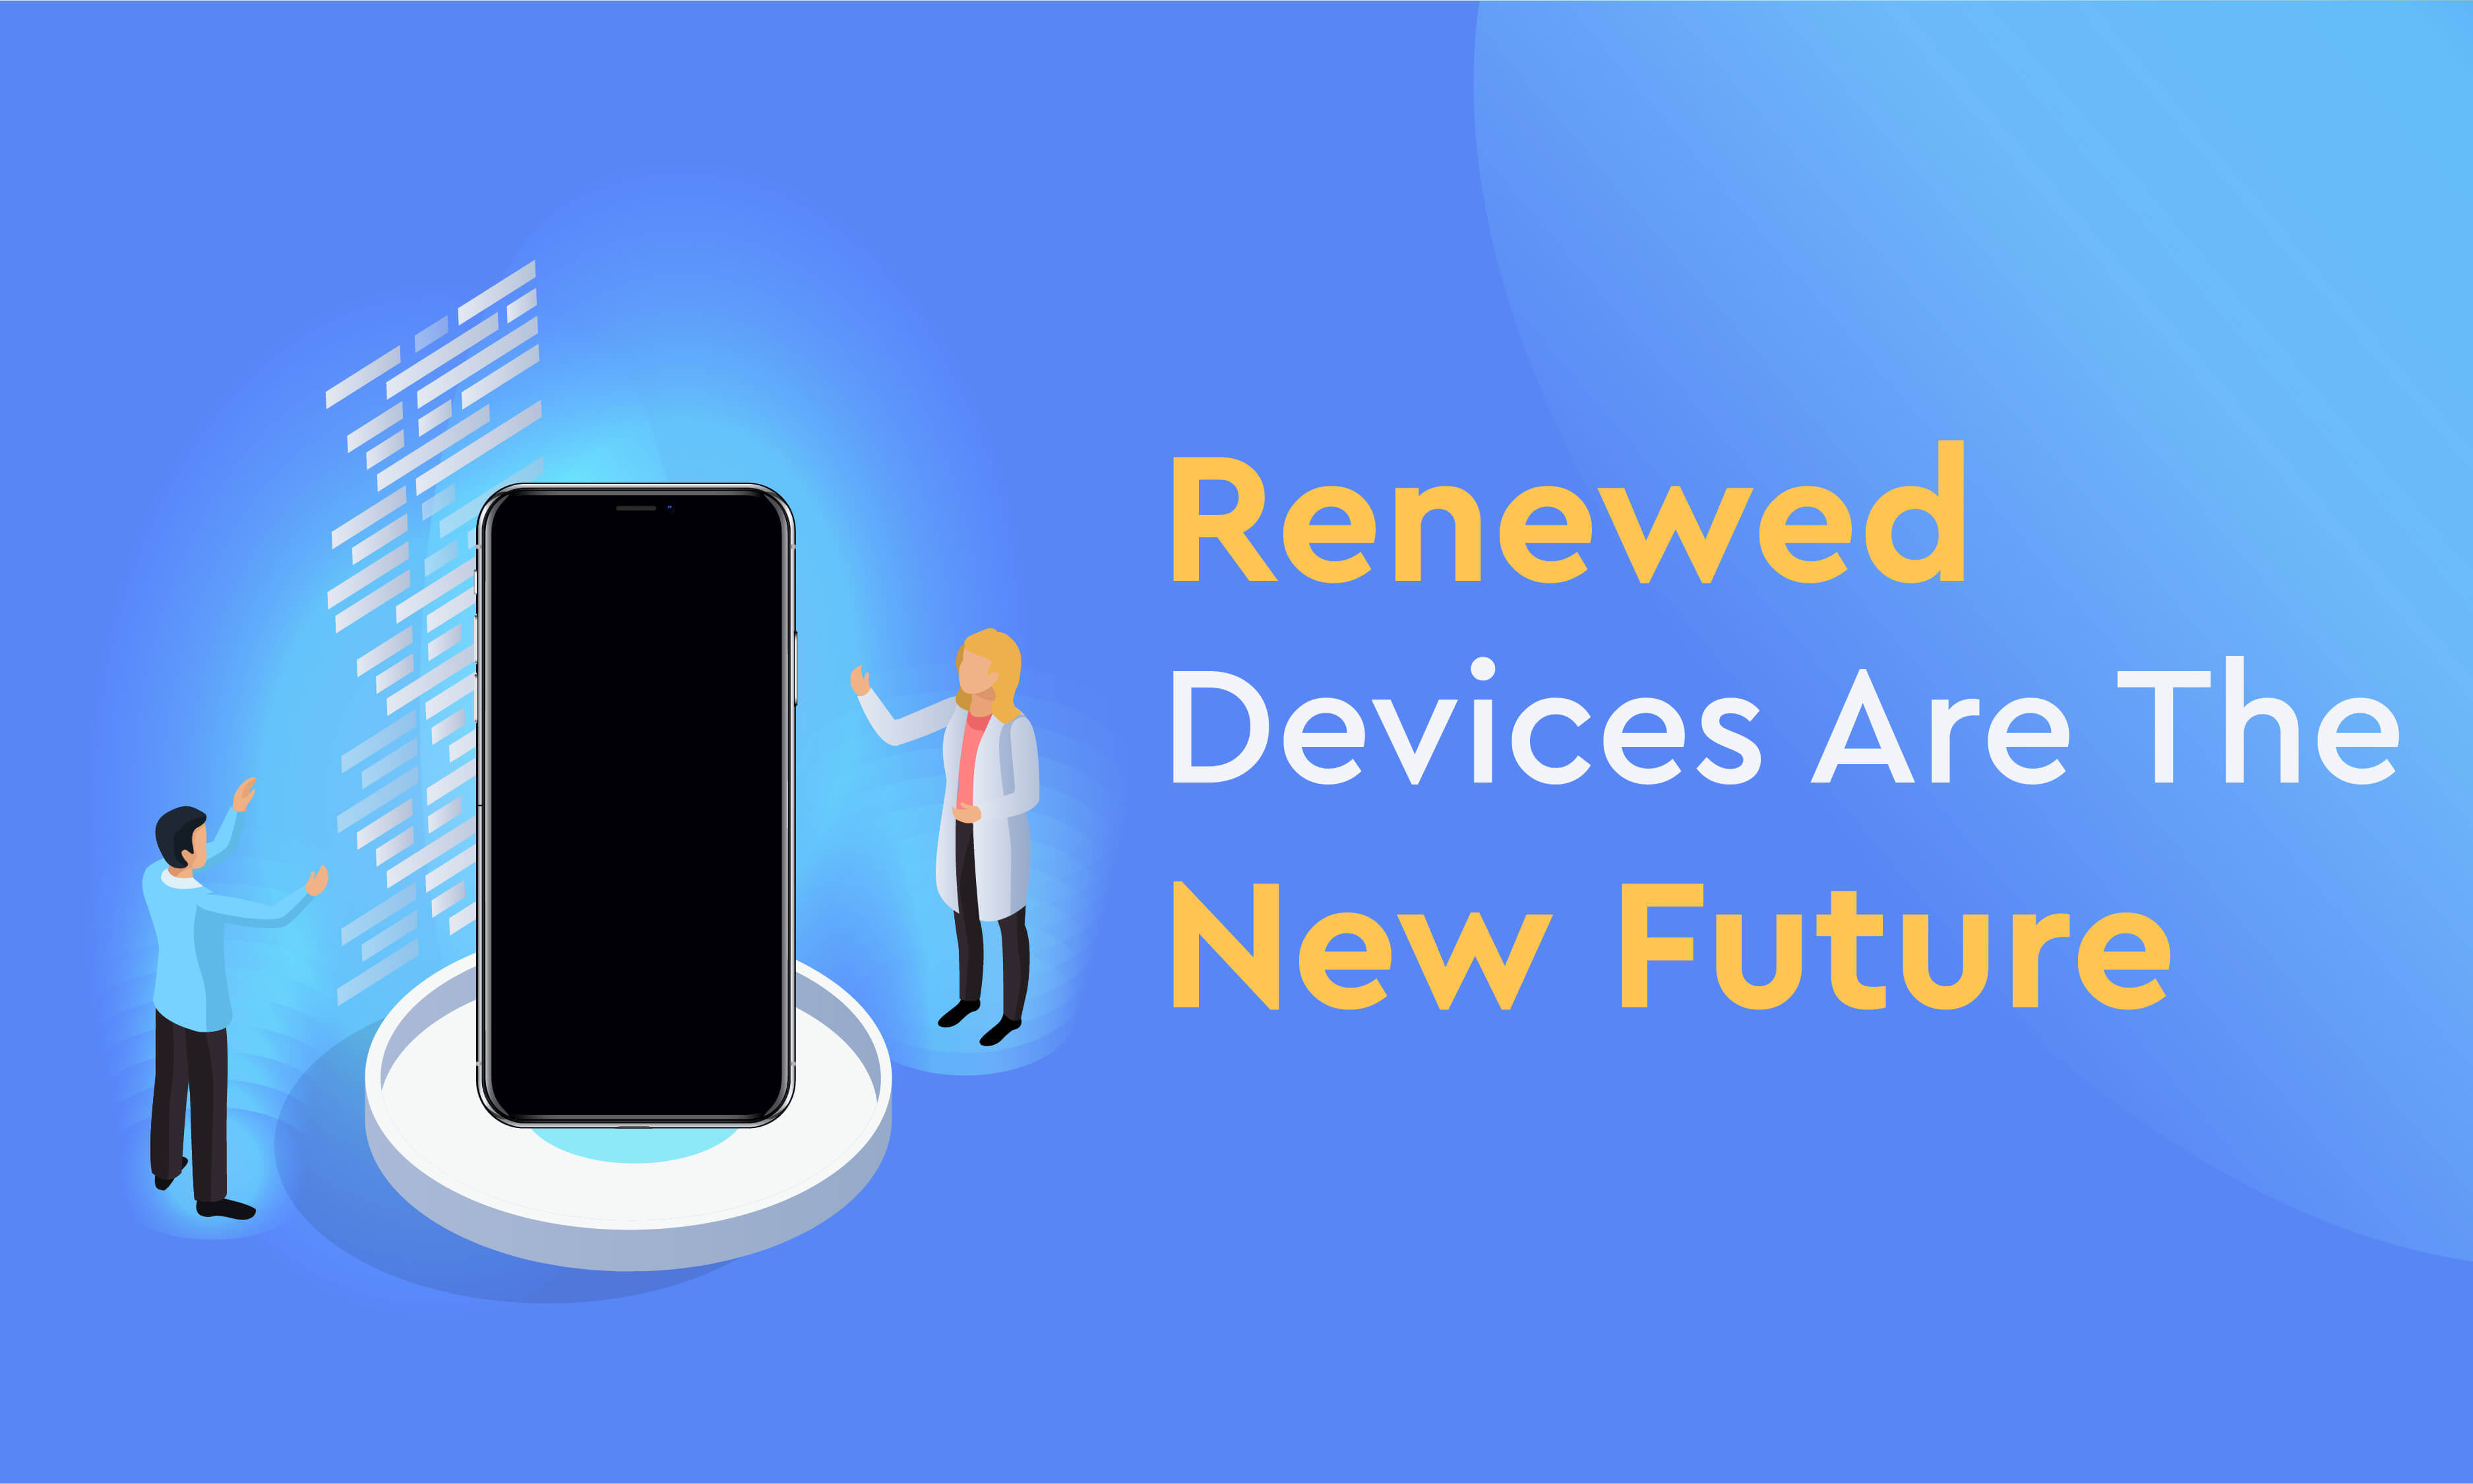 Renewed Devices Are The New Future